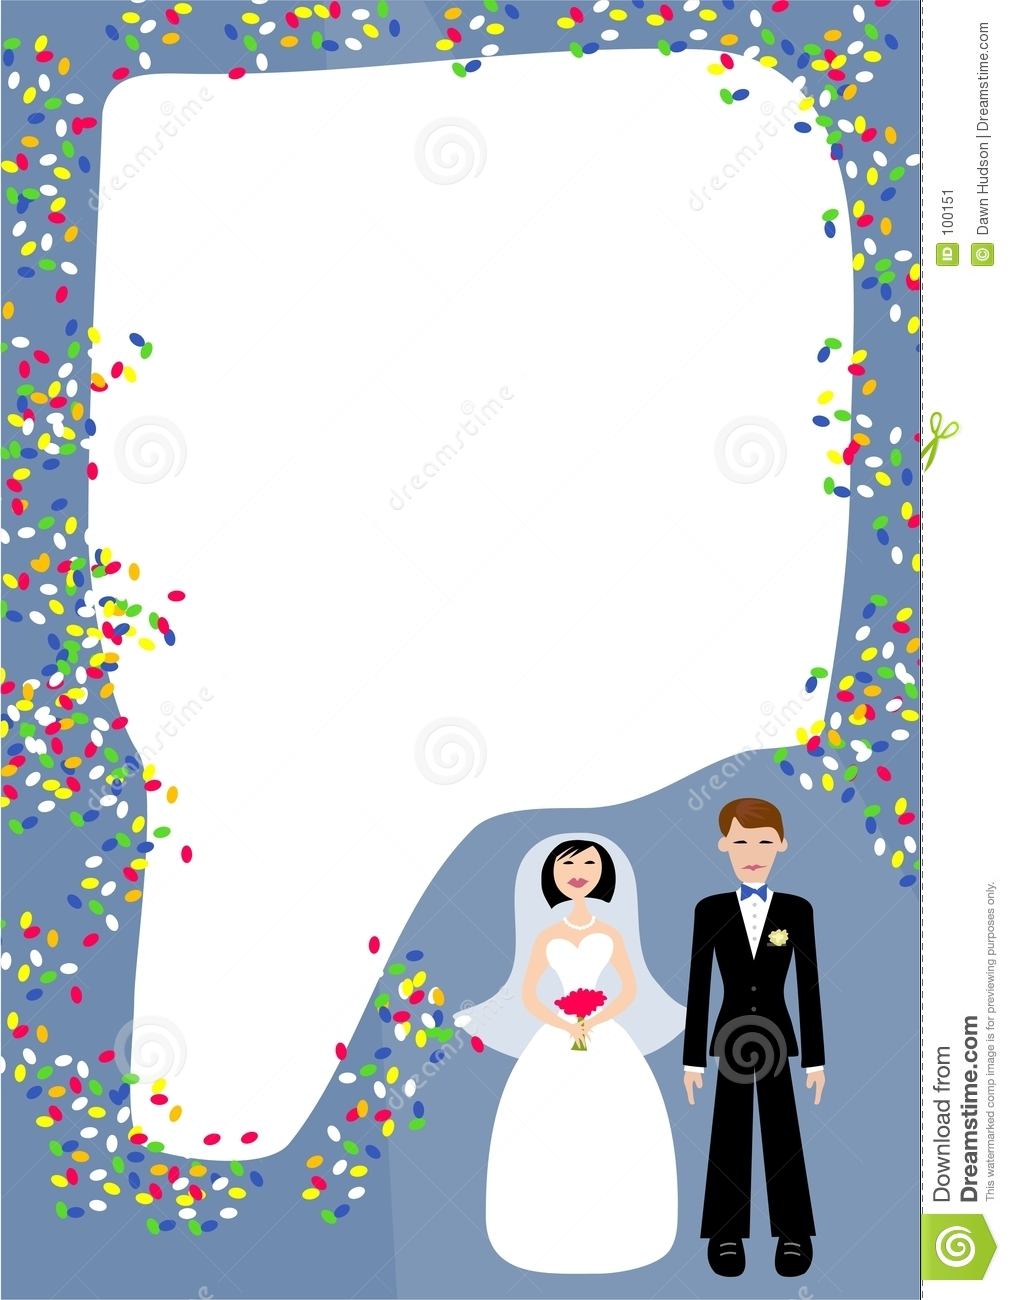 Wedding Frame stock vector. Illustration of border, events - 100151